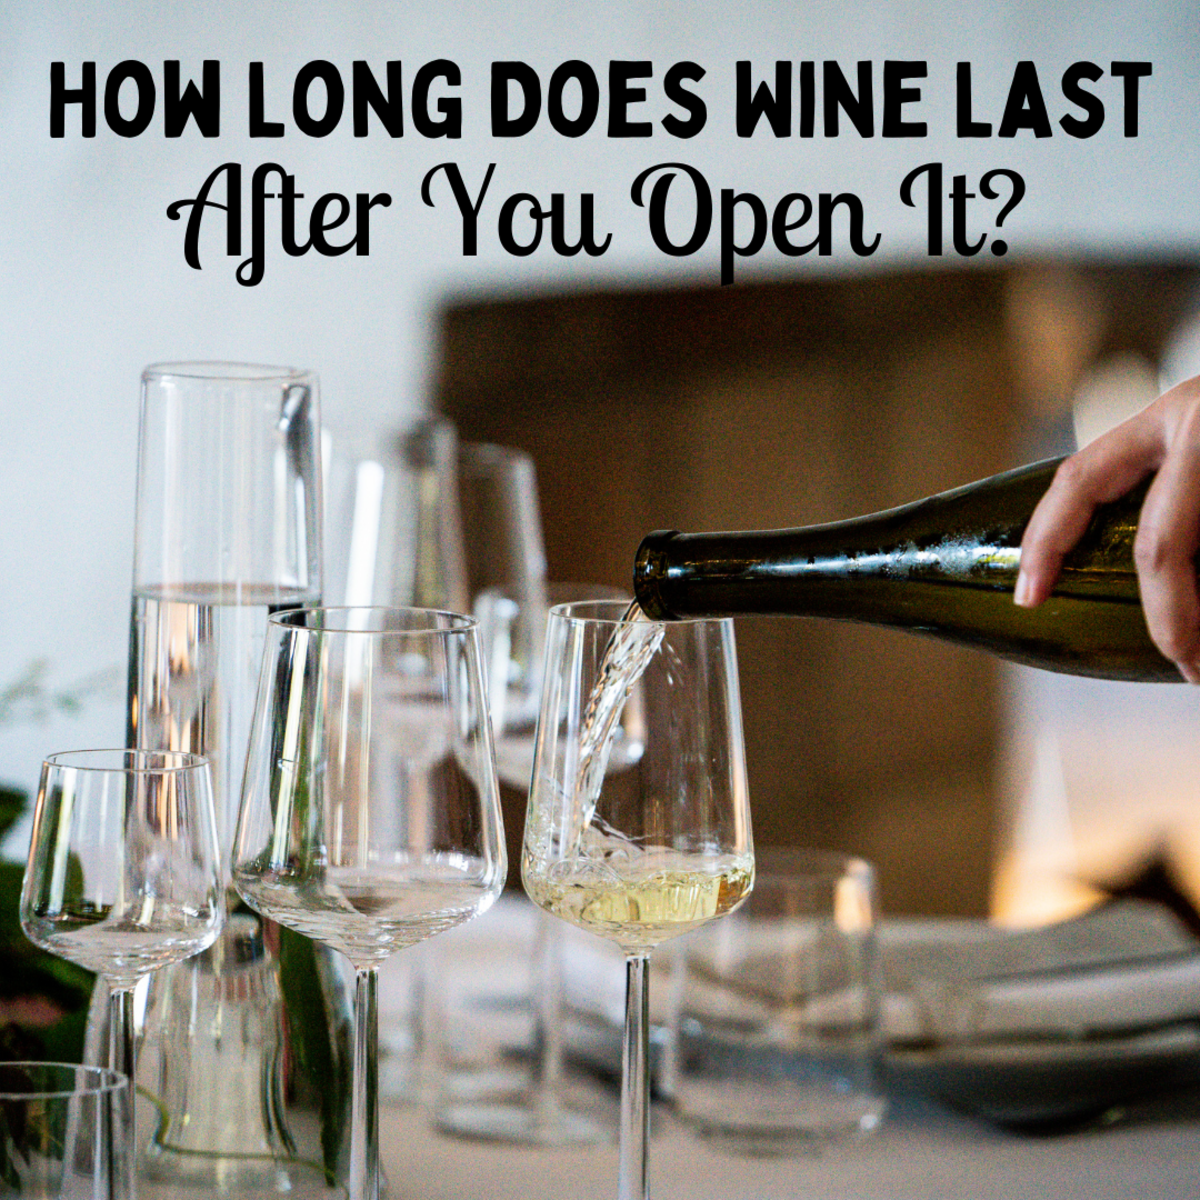 how-long-does-wine-last-after-you-open-it